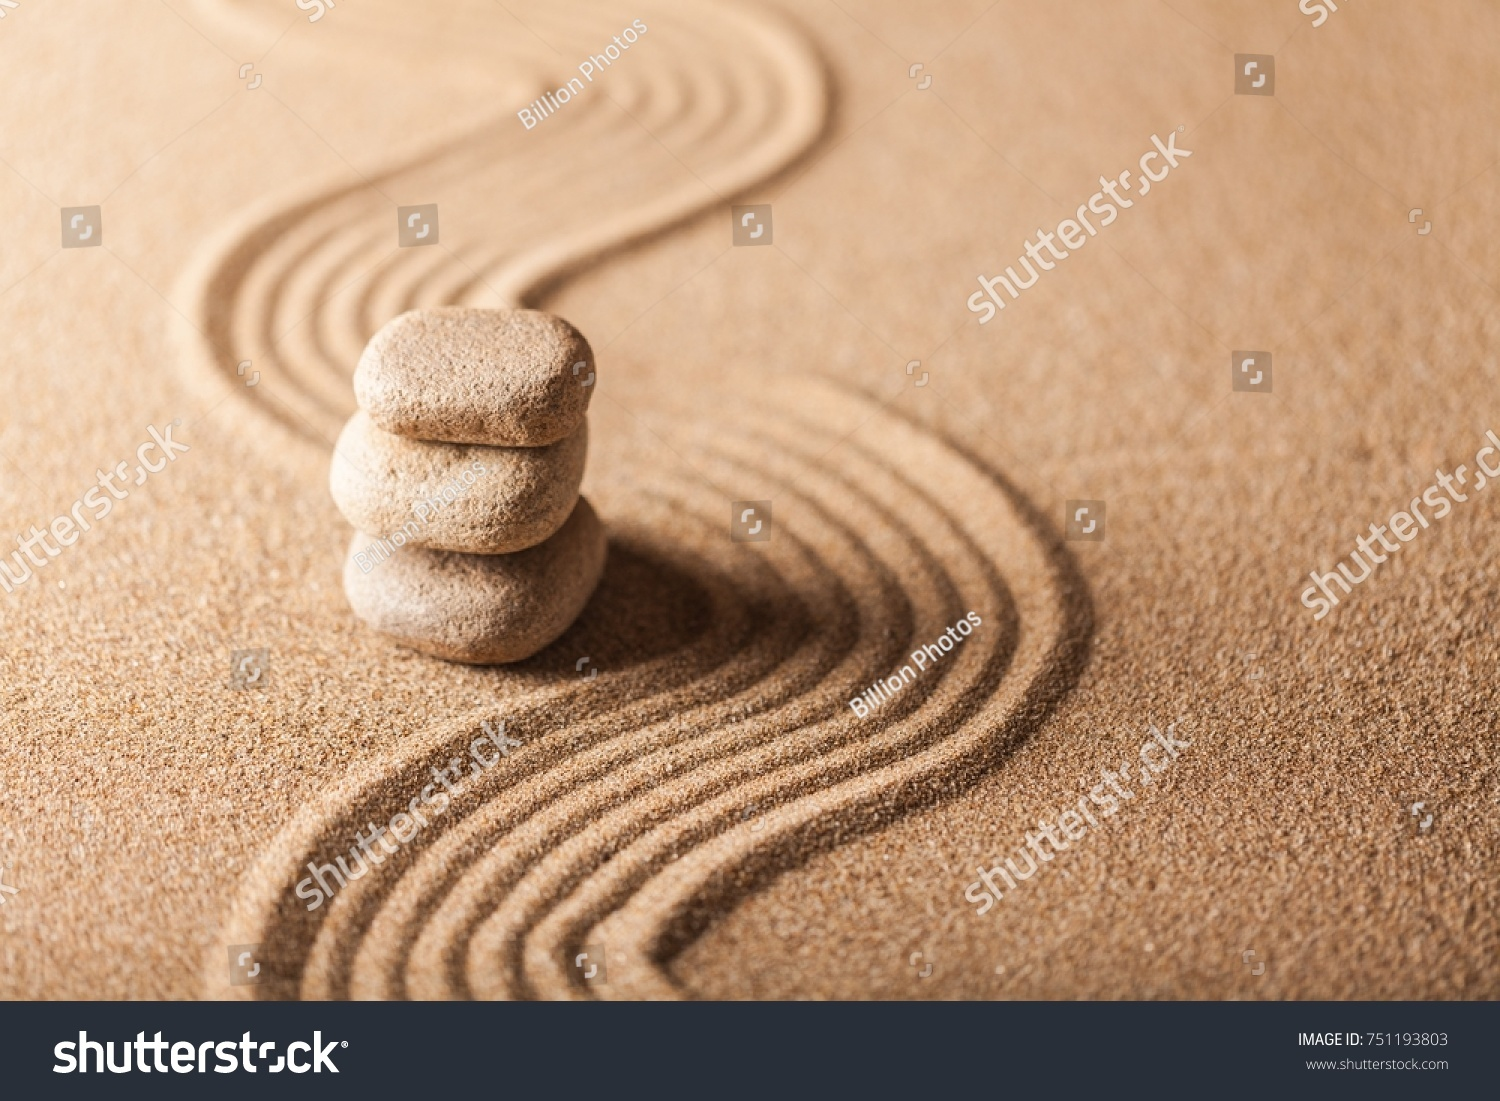 Zen Garden Raked Sand Balancing Pebbles Stock Photo (Royalty Free ...